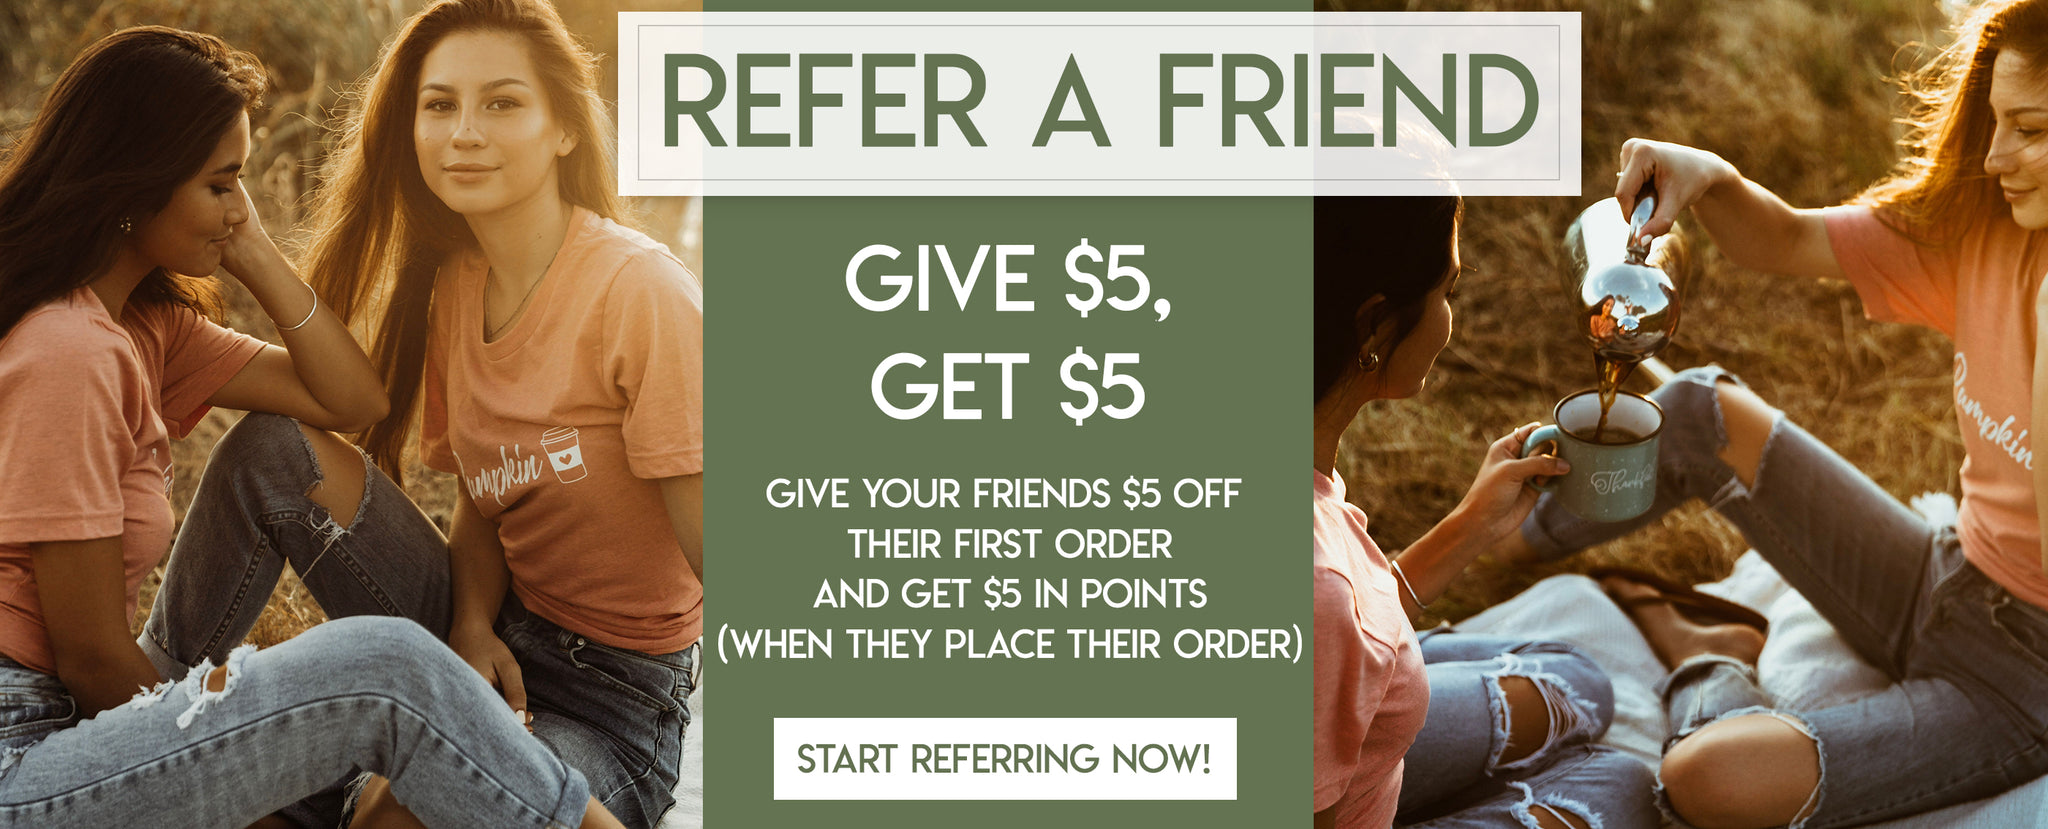 Refer a Friend - Give $5 Get $5 - Pretty Collected